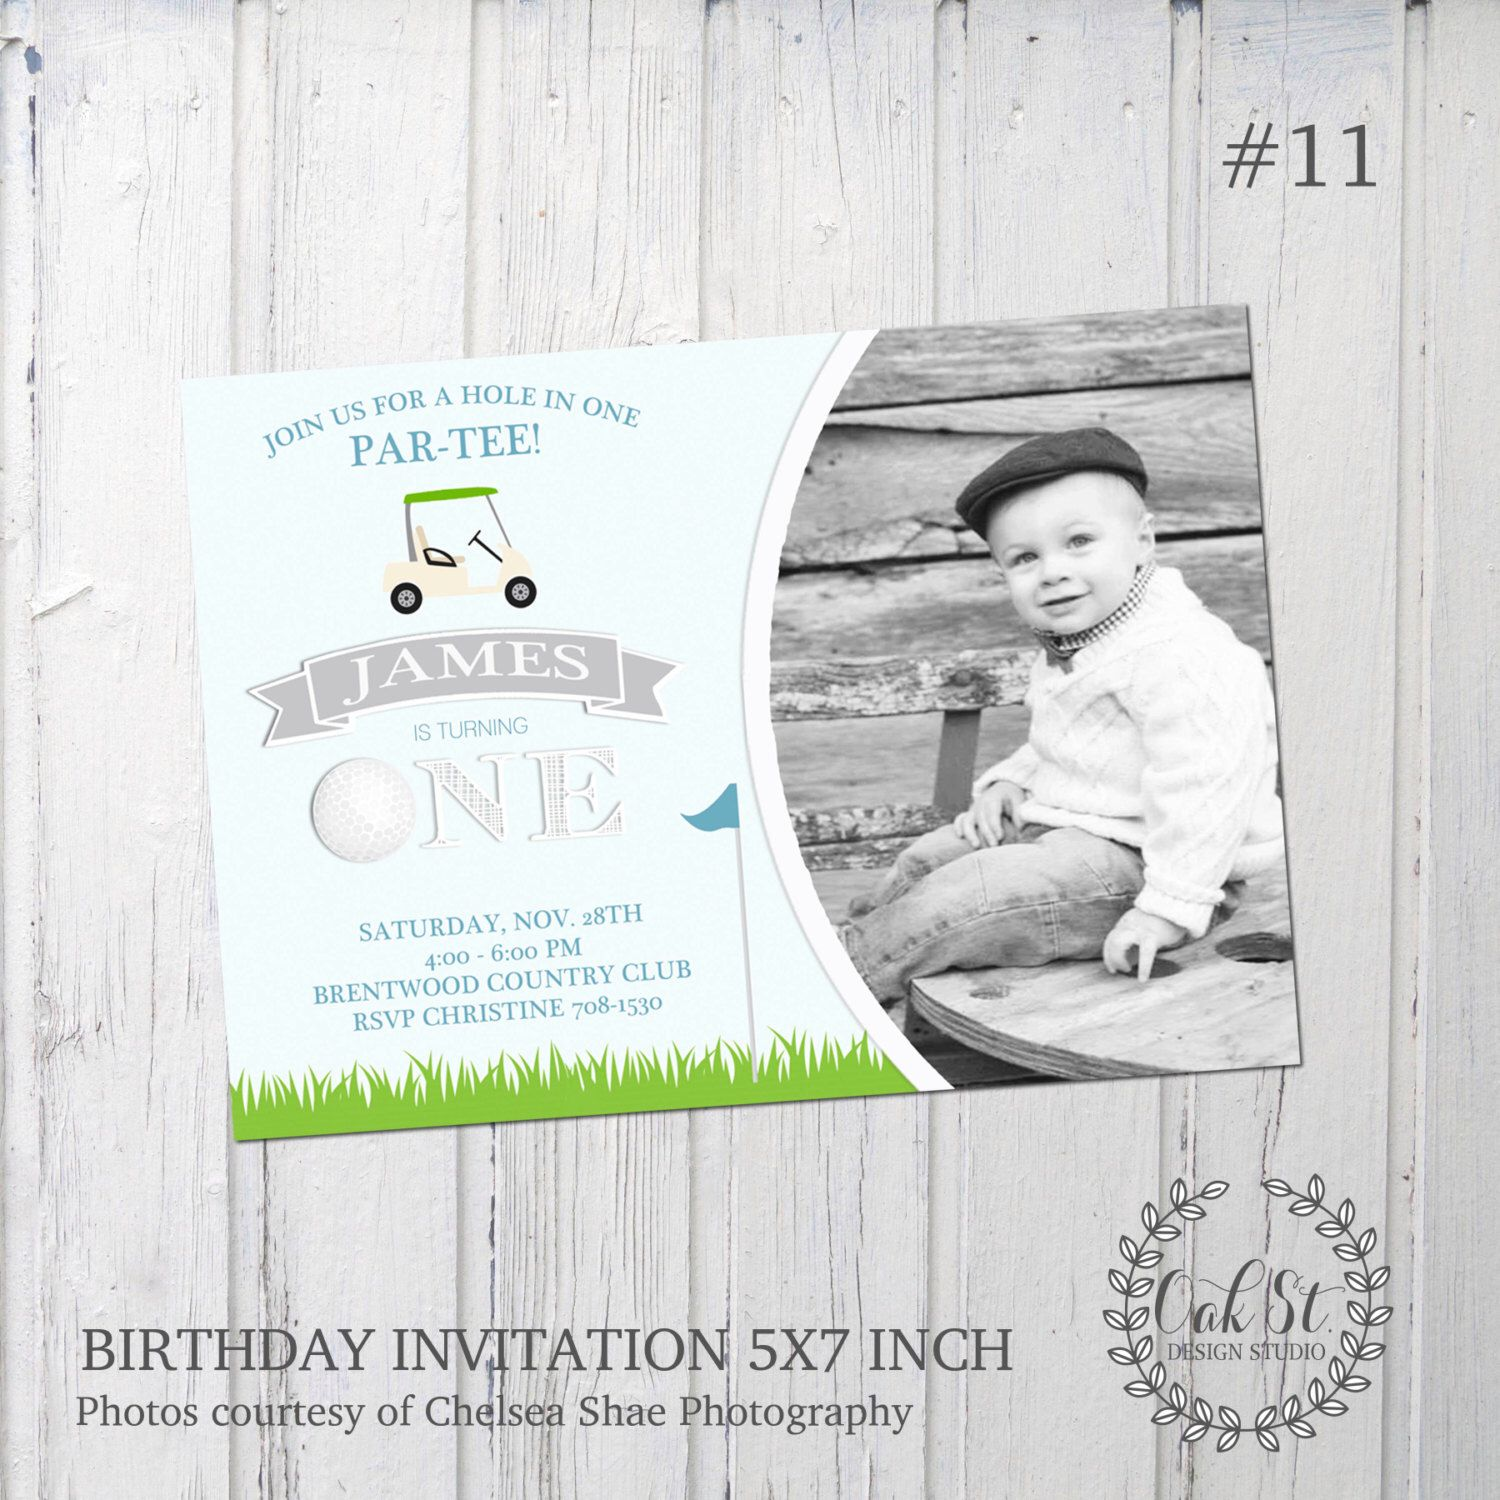 Spring sale golf birthday party invitation golf invite golf party spring sale golf birthday party invitation golf invite golf party first birthday 1st 2nd 3rd 4th birthday boys golf party desig stopboris